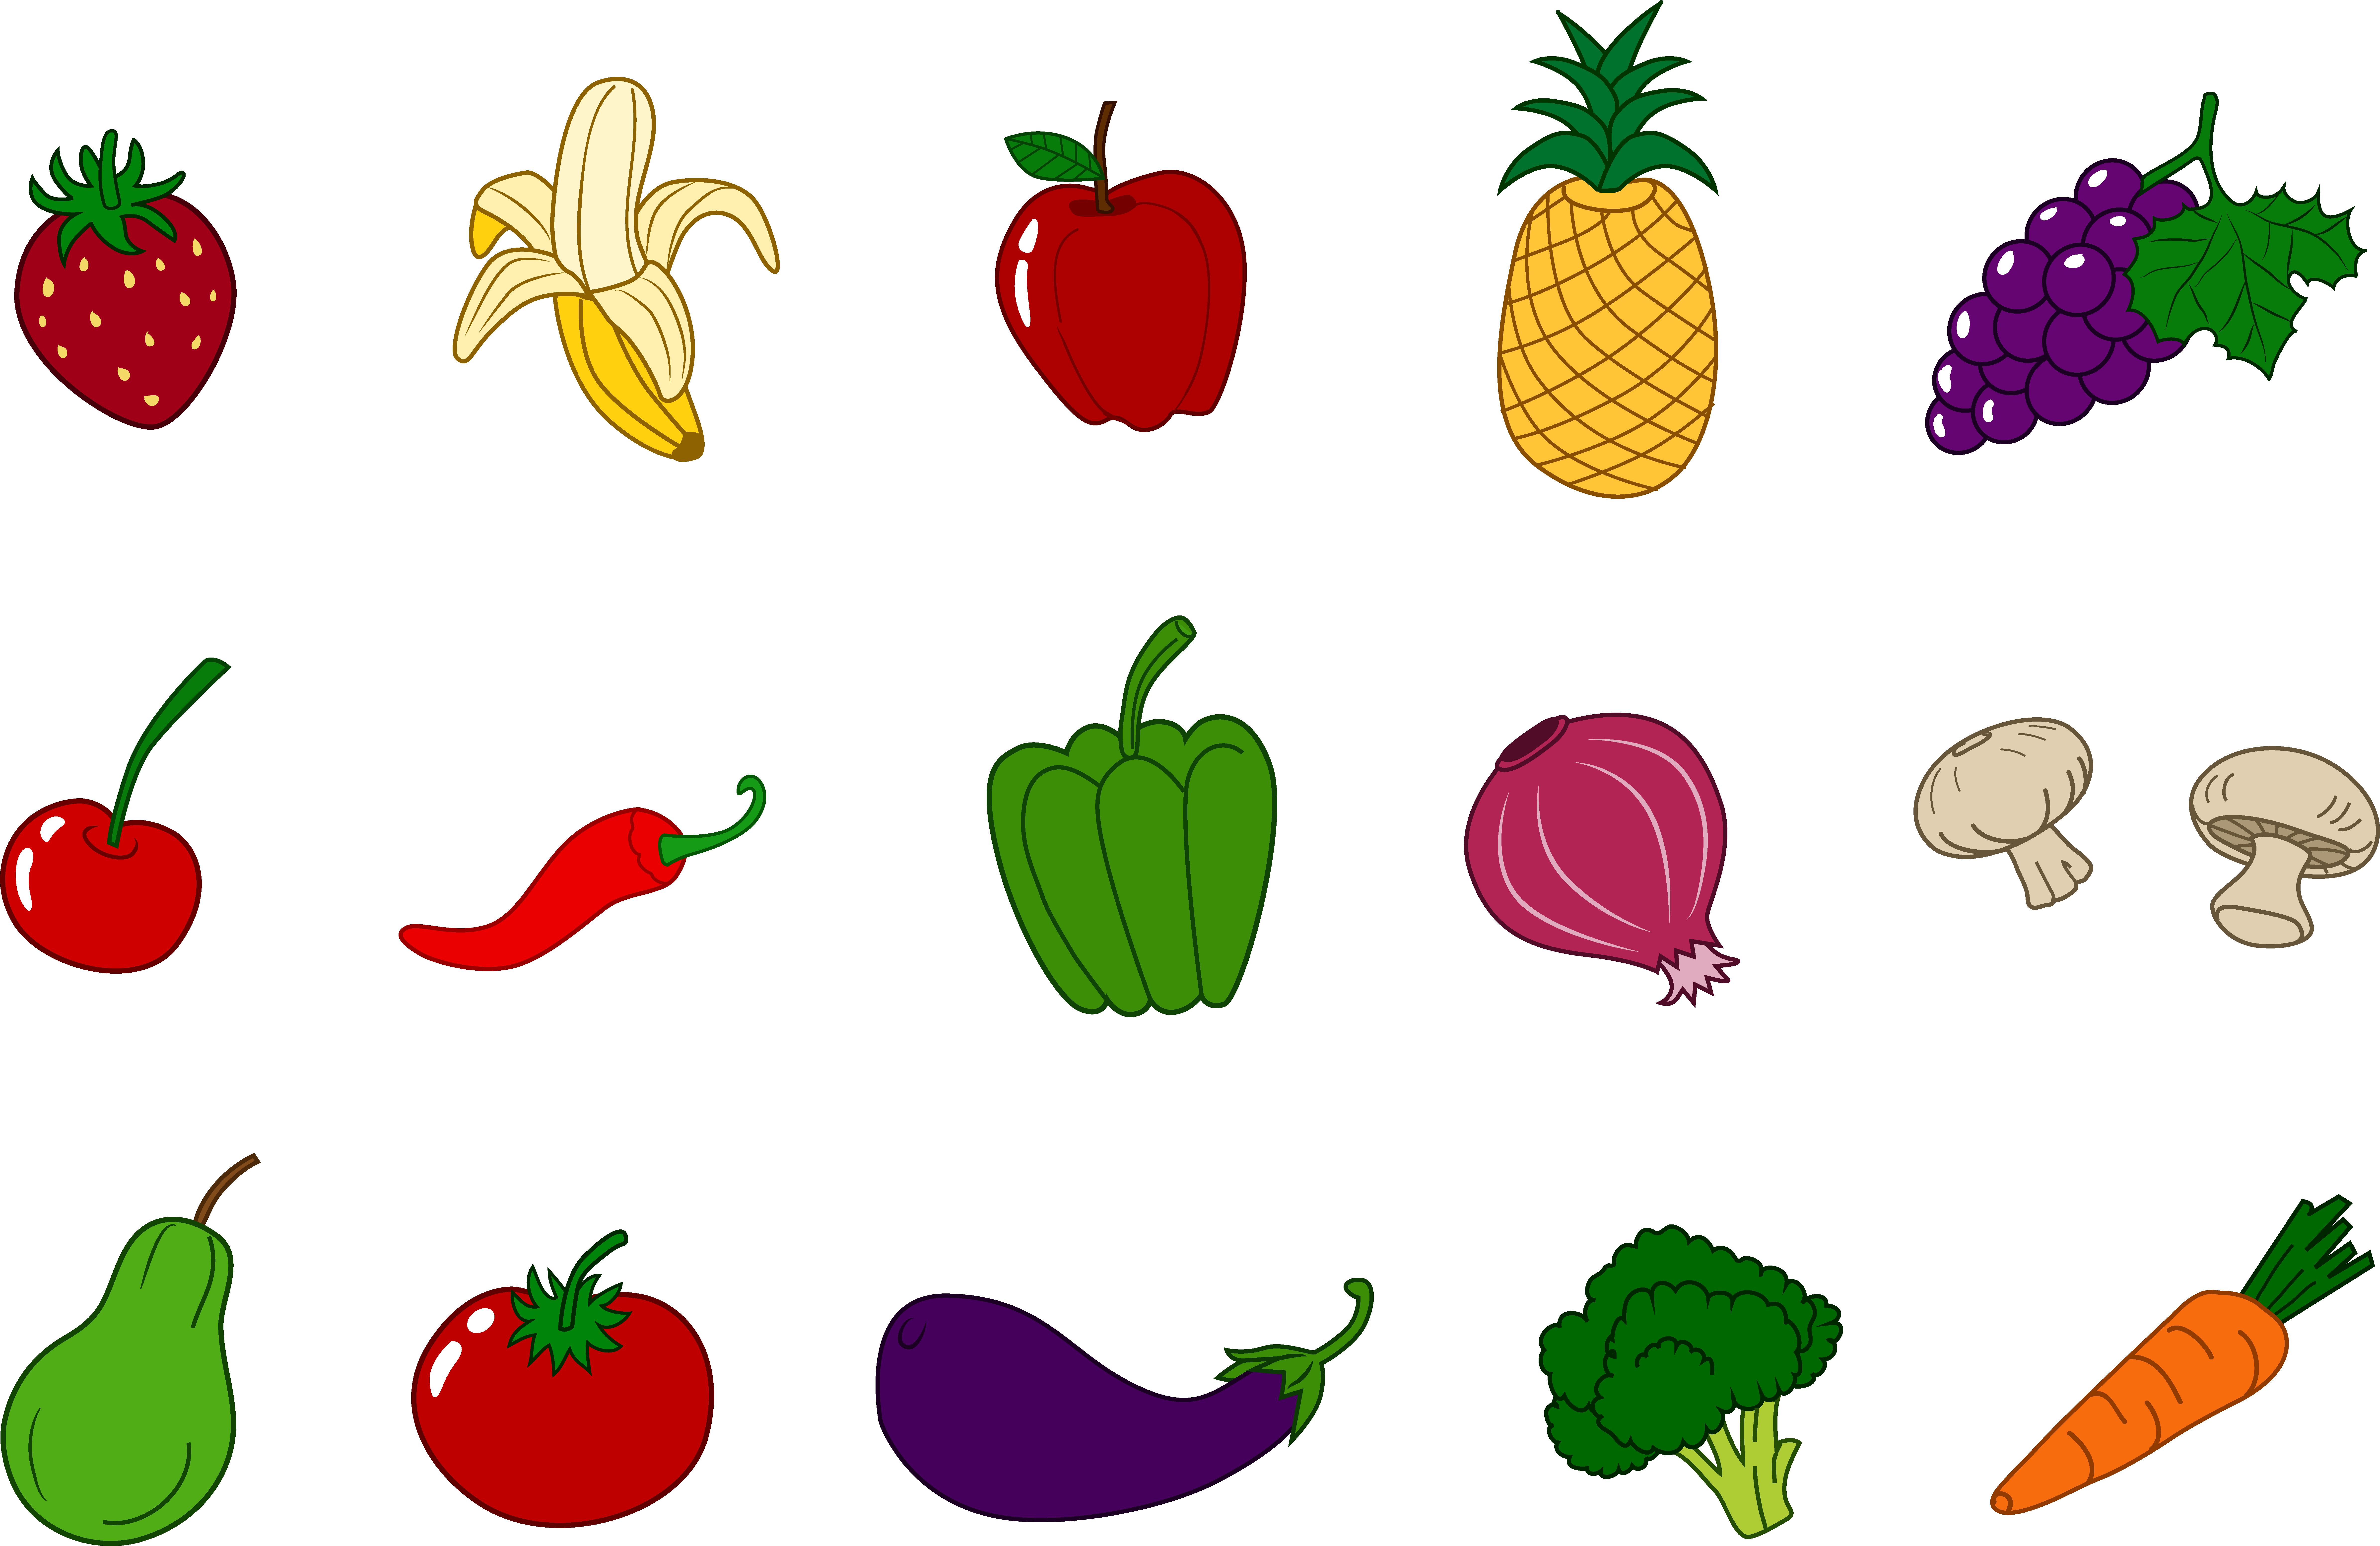 Fruits And Vegetables Clipart U0026amp; -Fruits And Vegetables Clipart u0026amp; Fruits And Vegetables Clip Art Images - ClipartALL clipartall.com-10